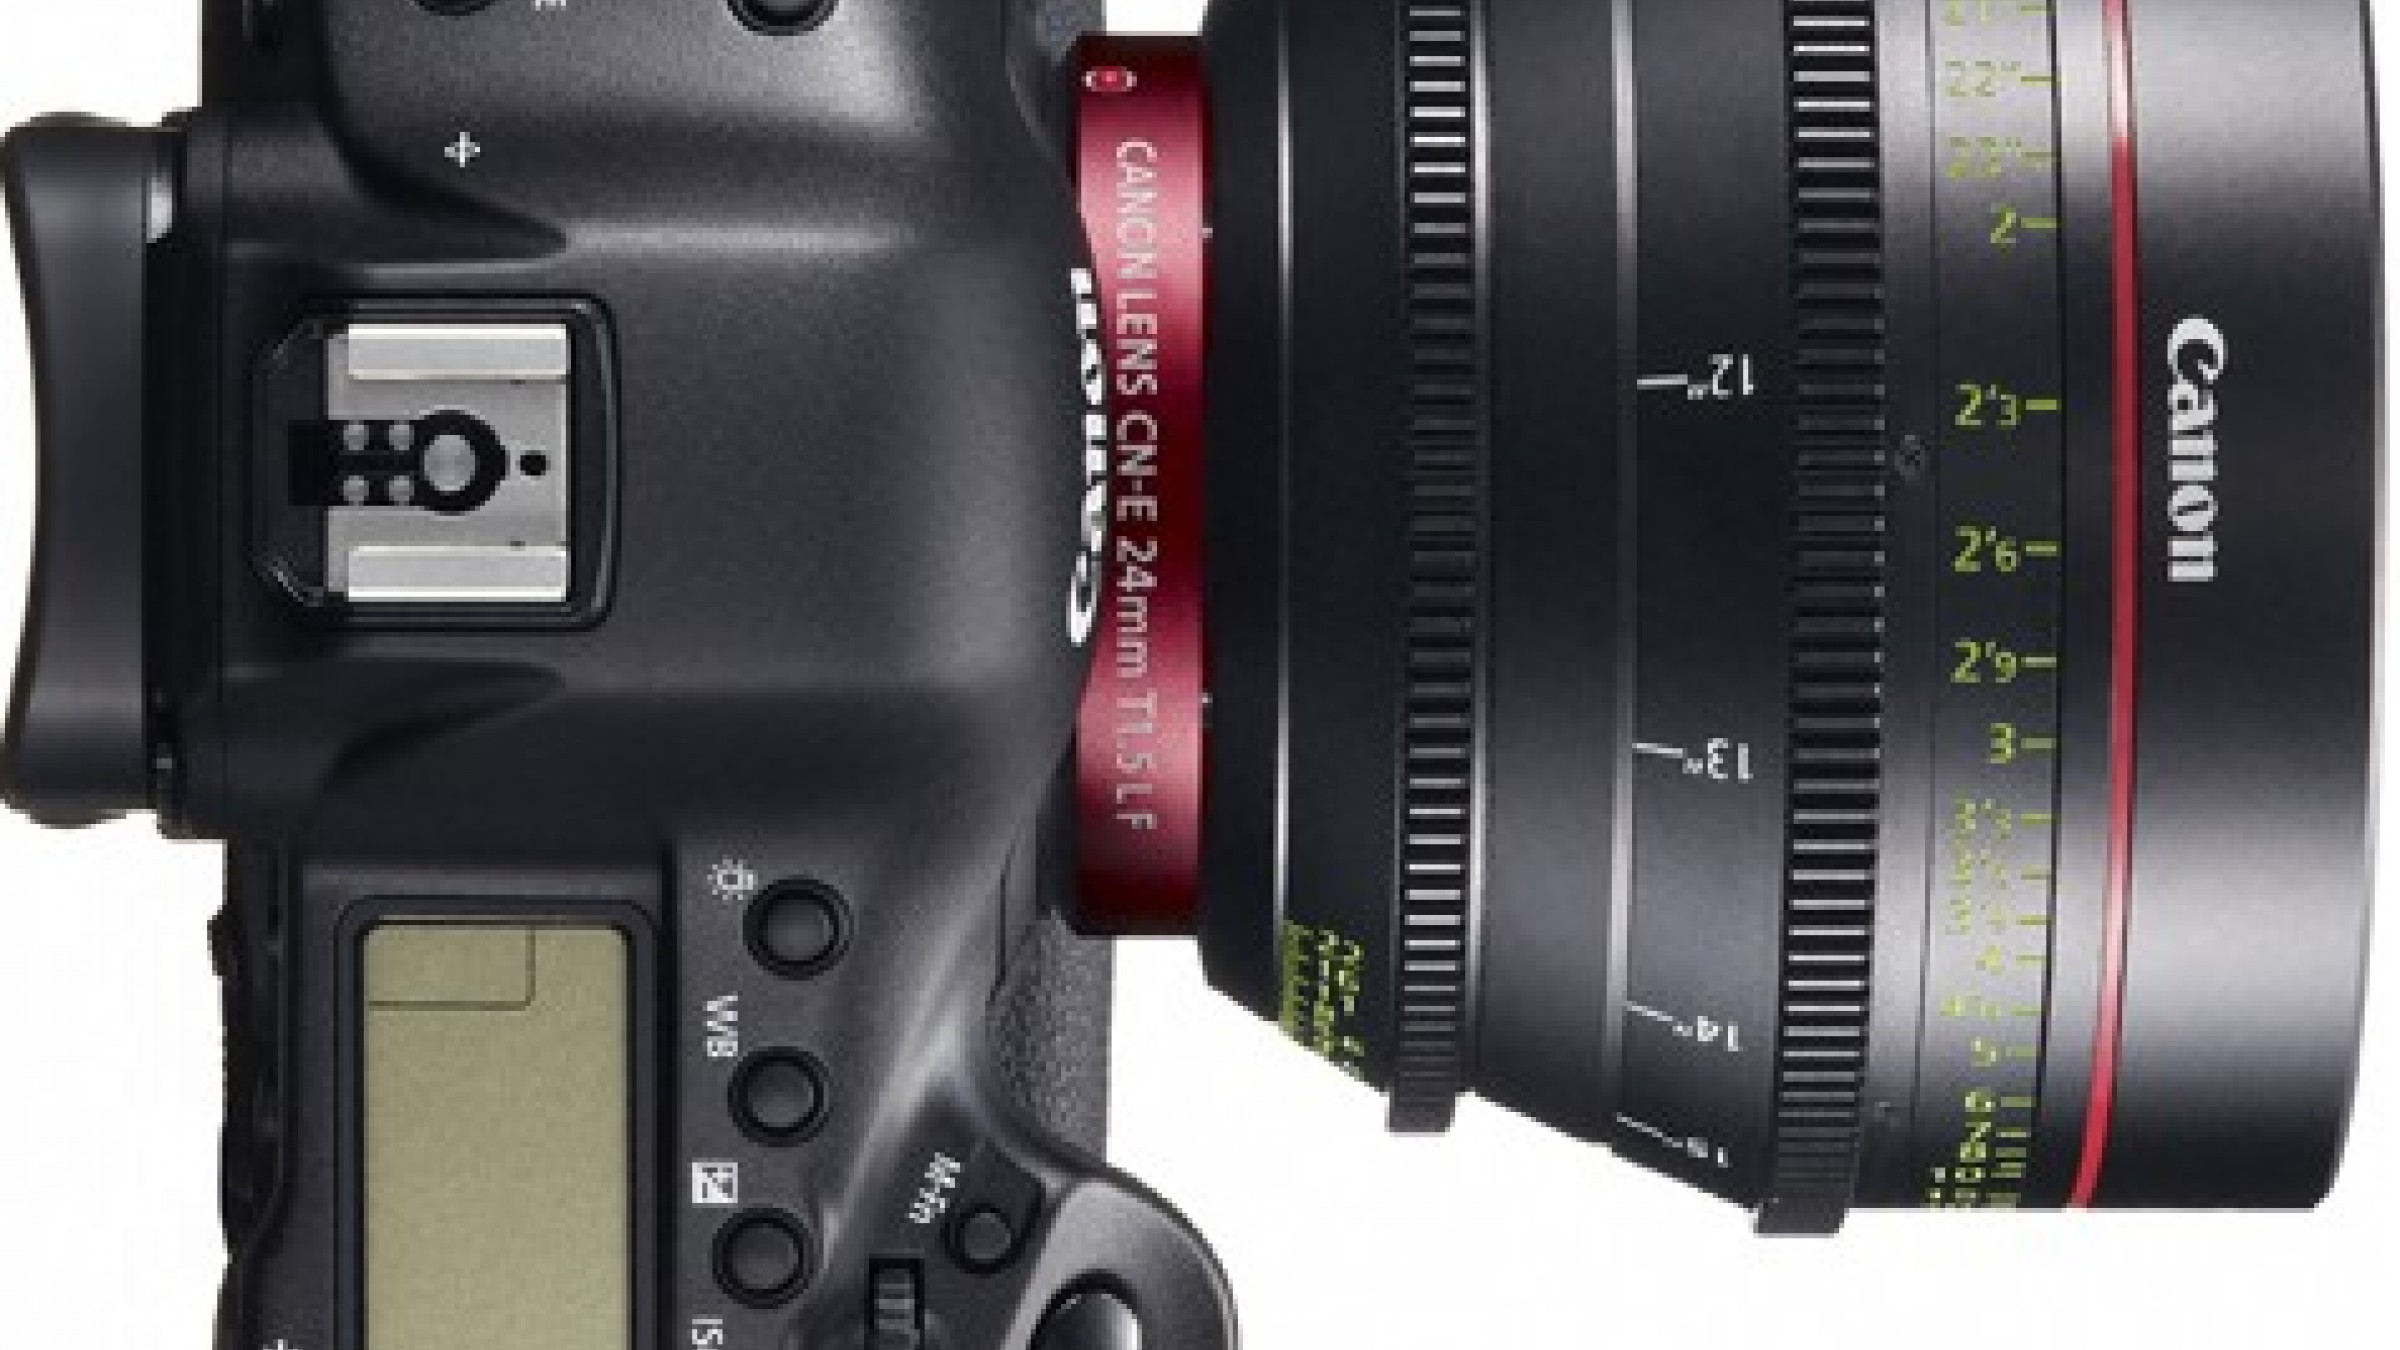 Canon May 'Bring the Might of Its Legal Team' if You Modify